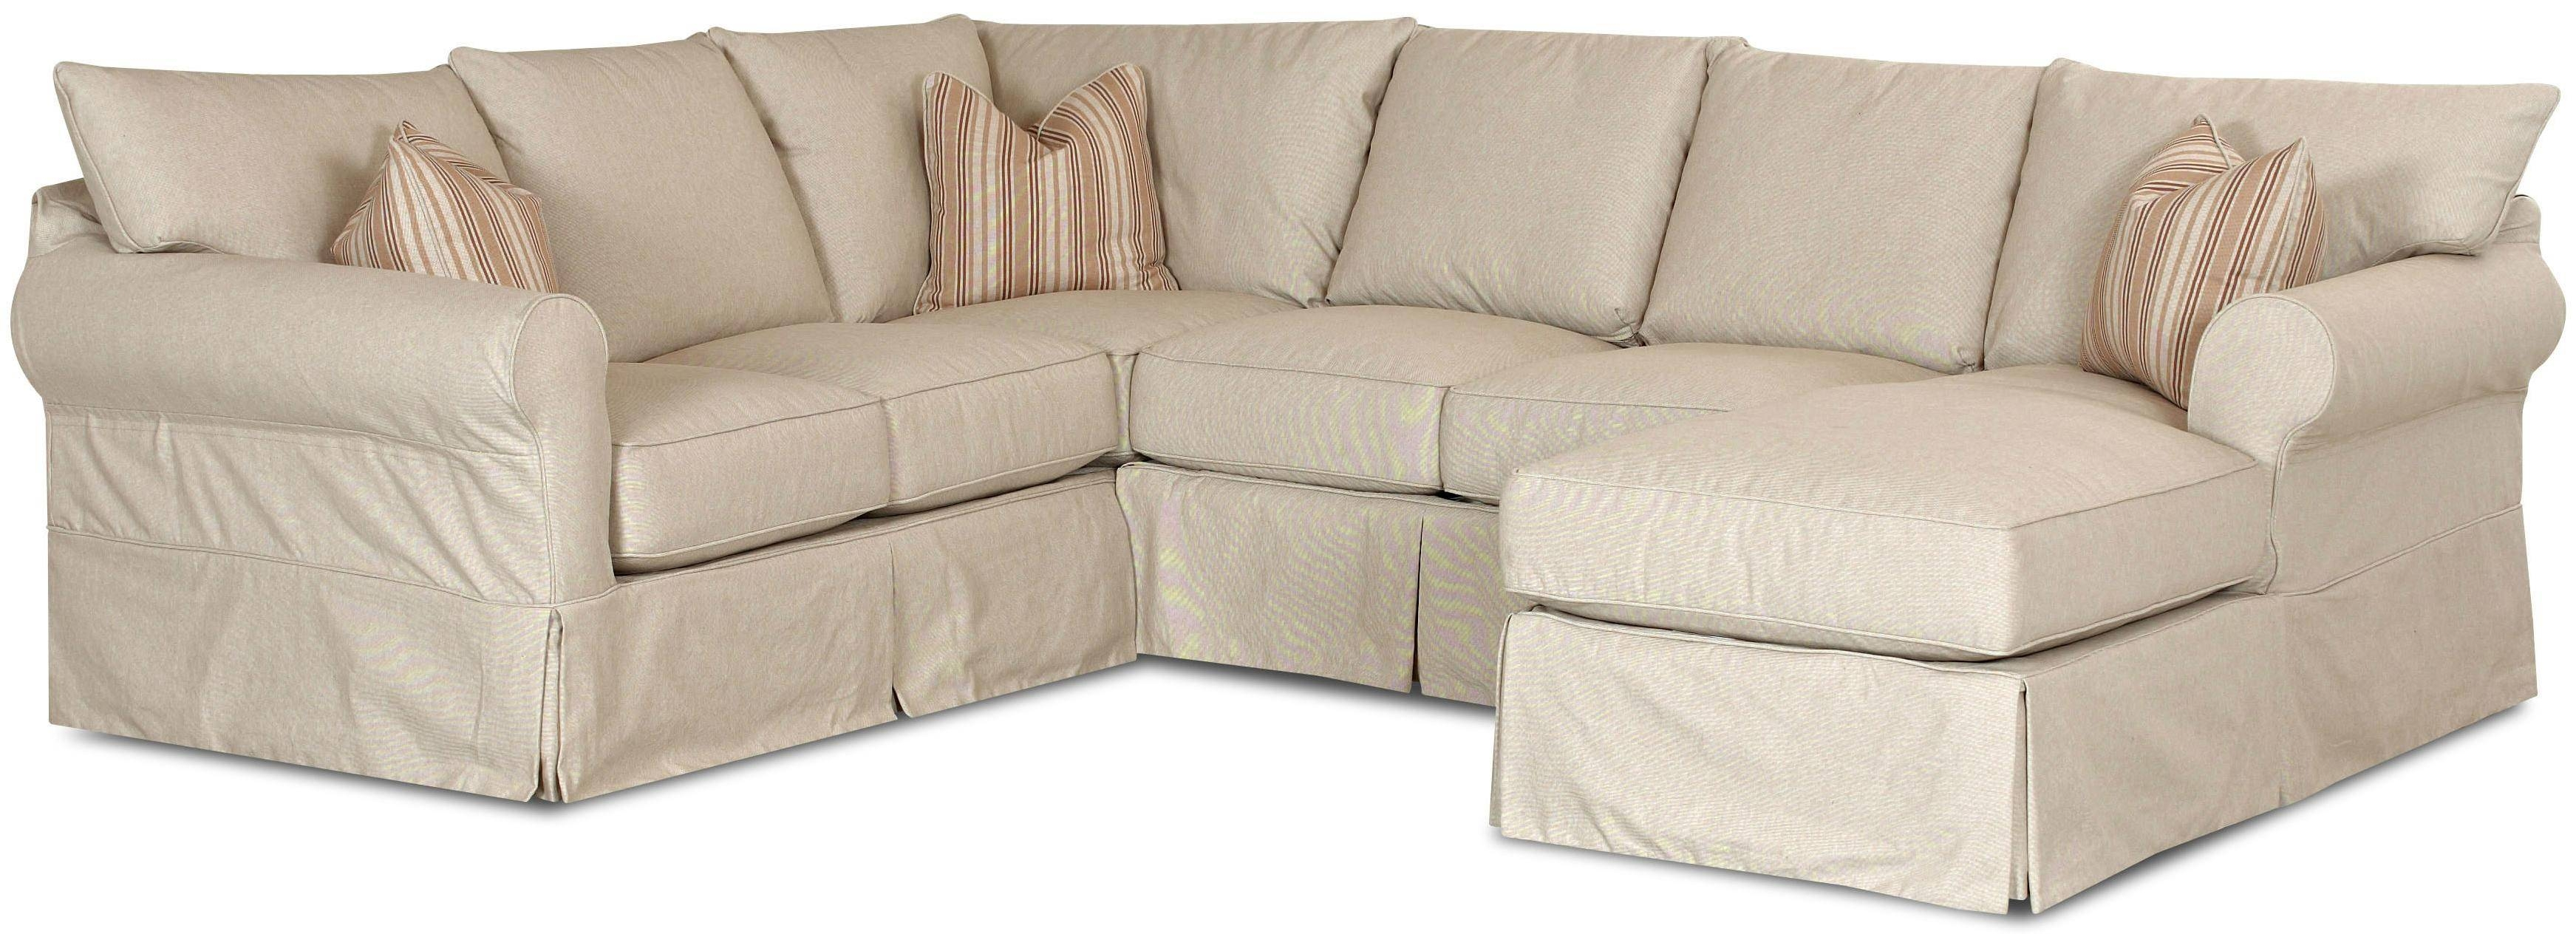 The Most Popular Sectional Sofa Slipcovers Cheap 22 In King Size With Sleeper Sofa Slipcovers (View 10 of 15)